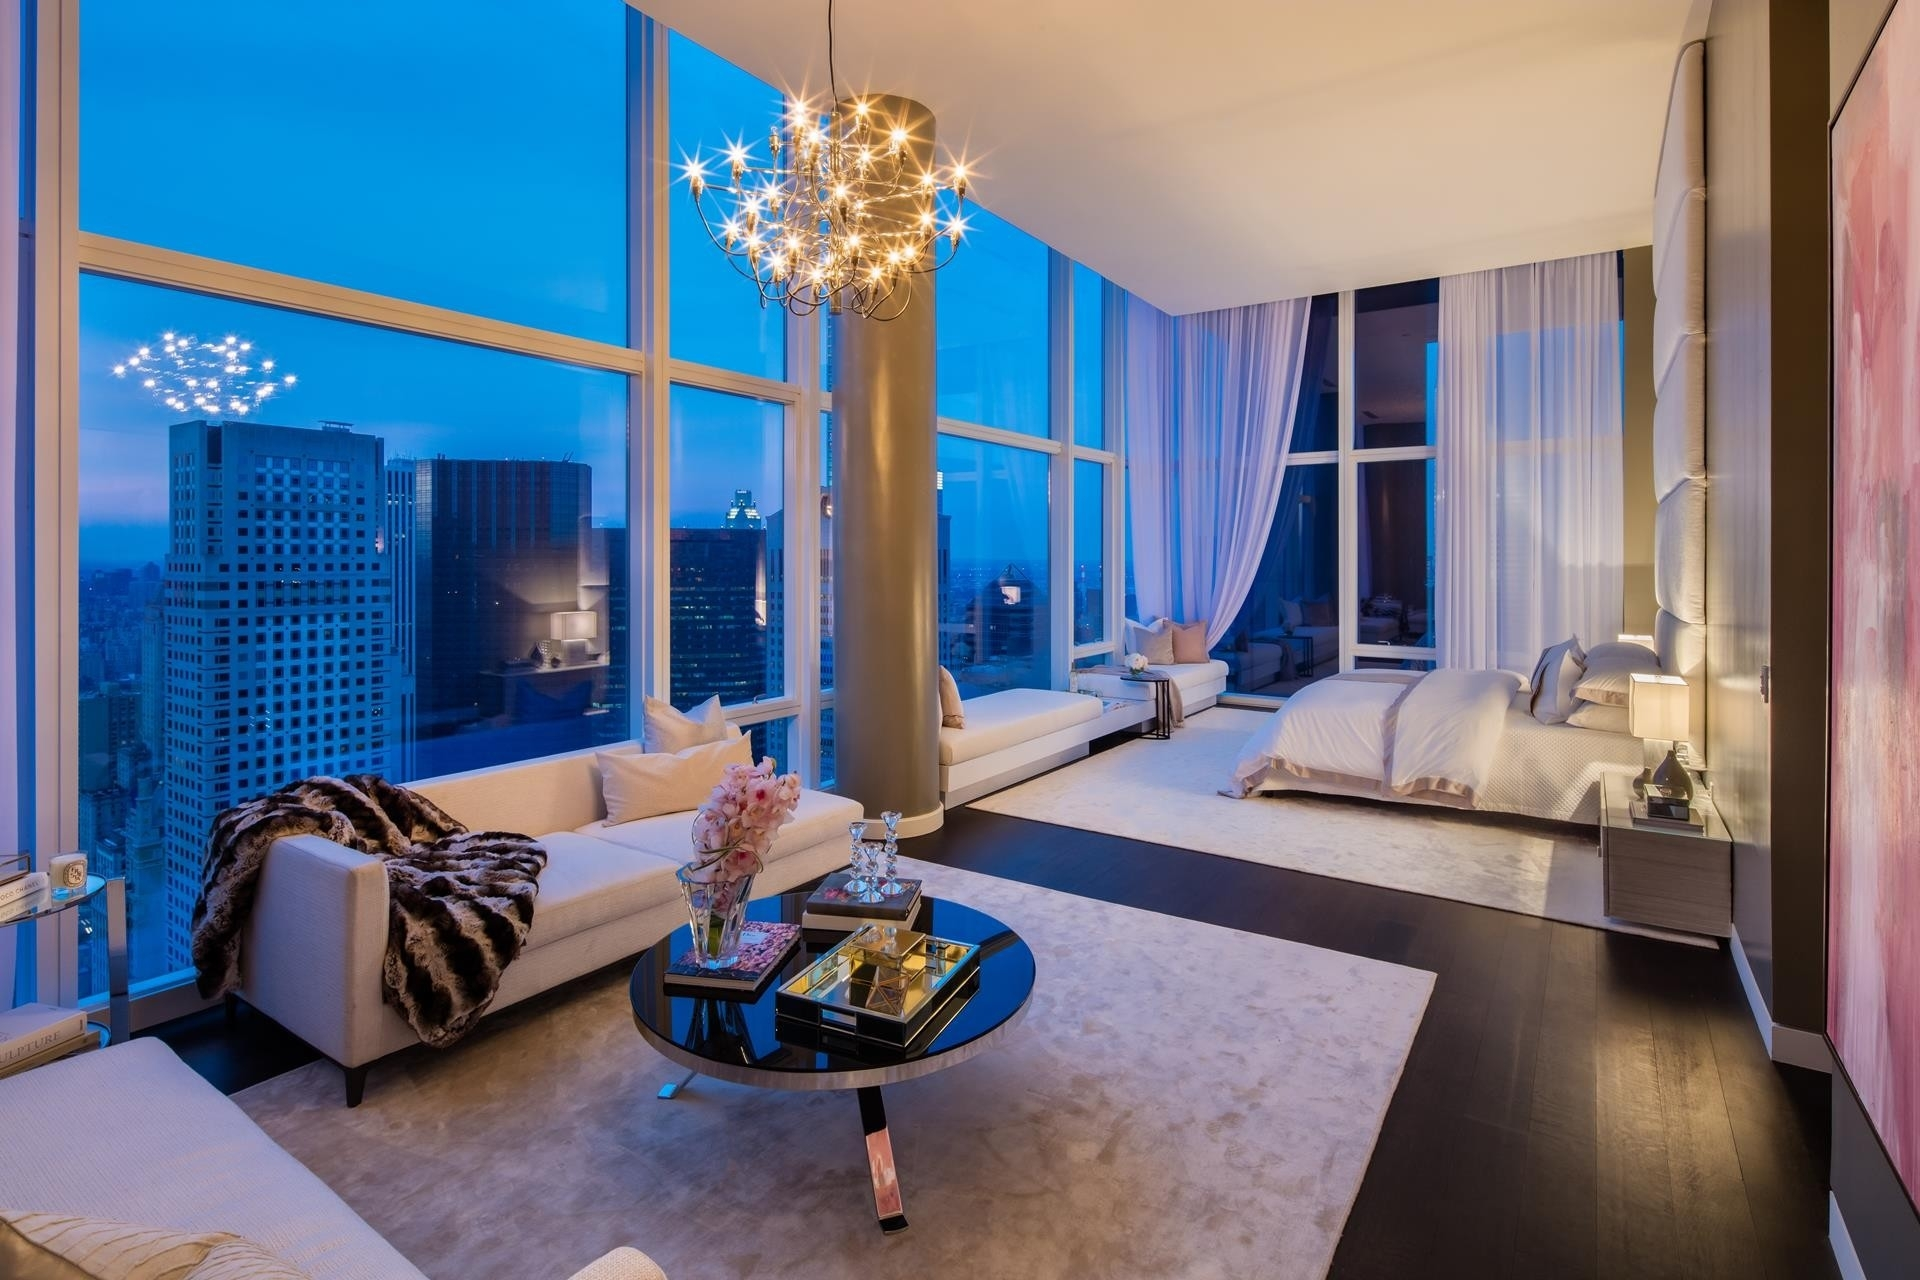 8. Condominiums for Sale at BACCARAT HOTEL & RESIDENCES, 20 West 53rd St, PH48/49 Midtown West, New York, NY 10019